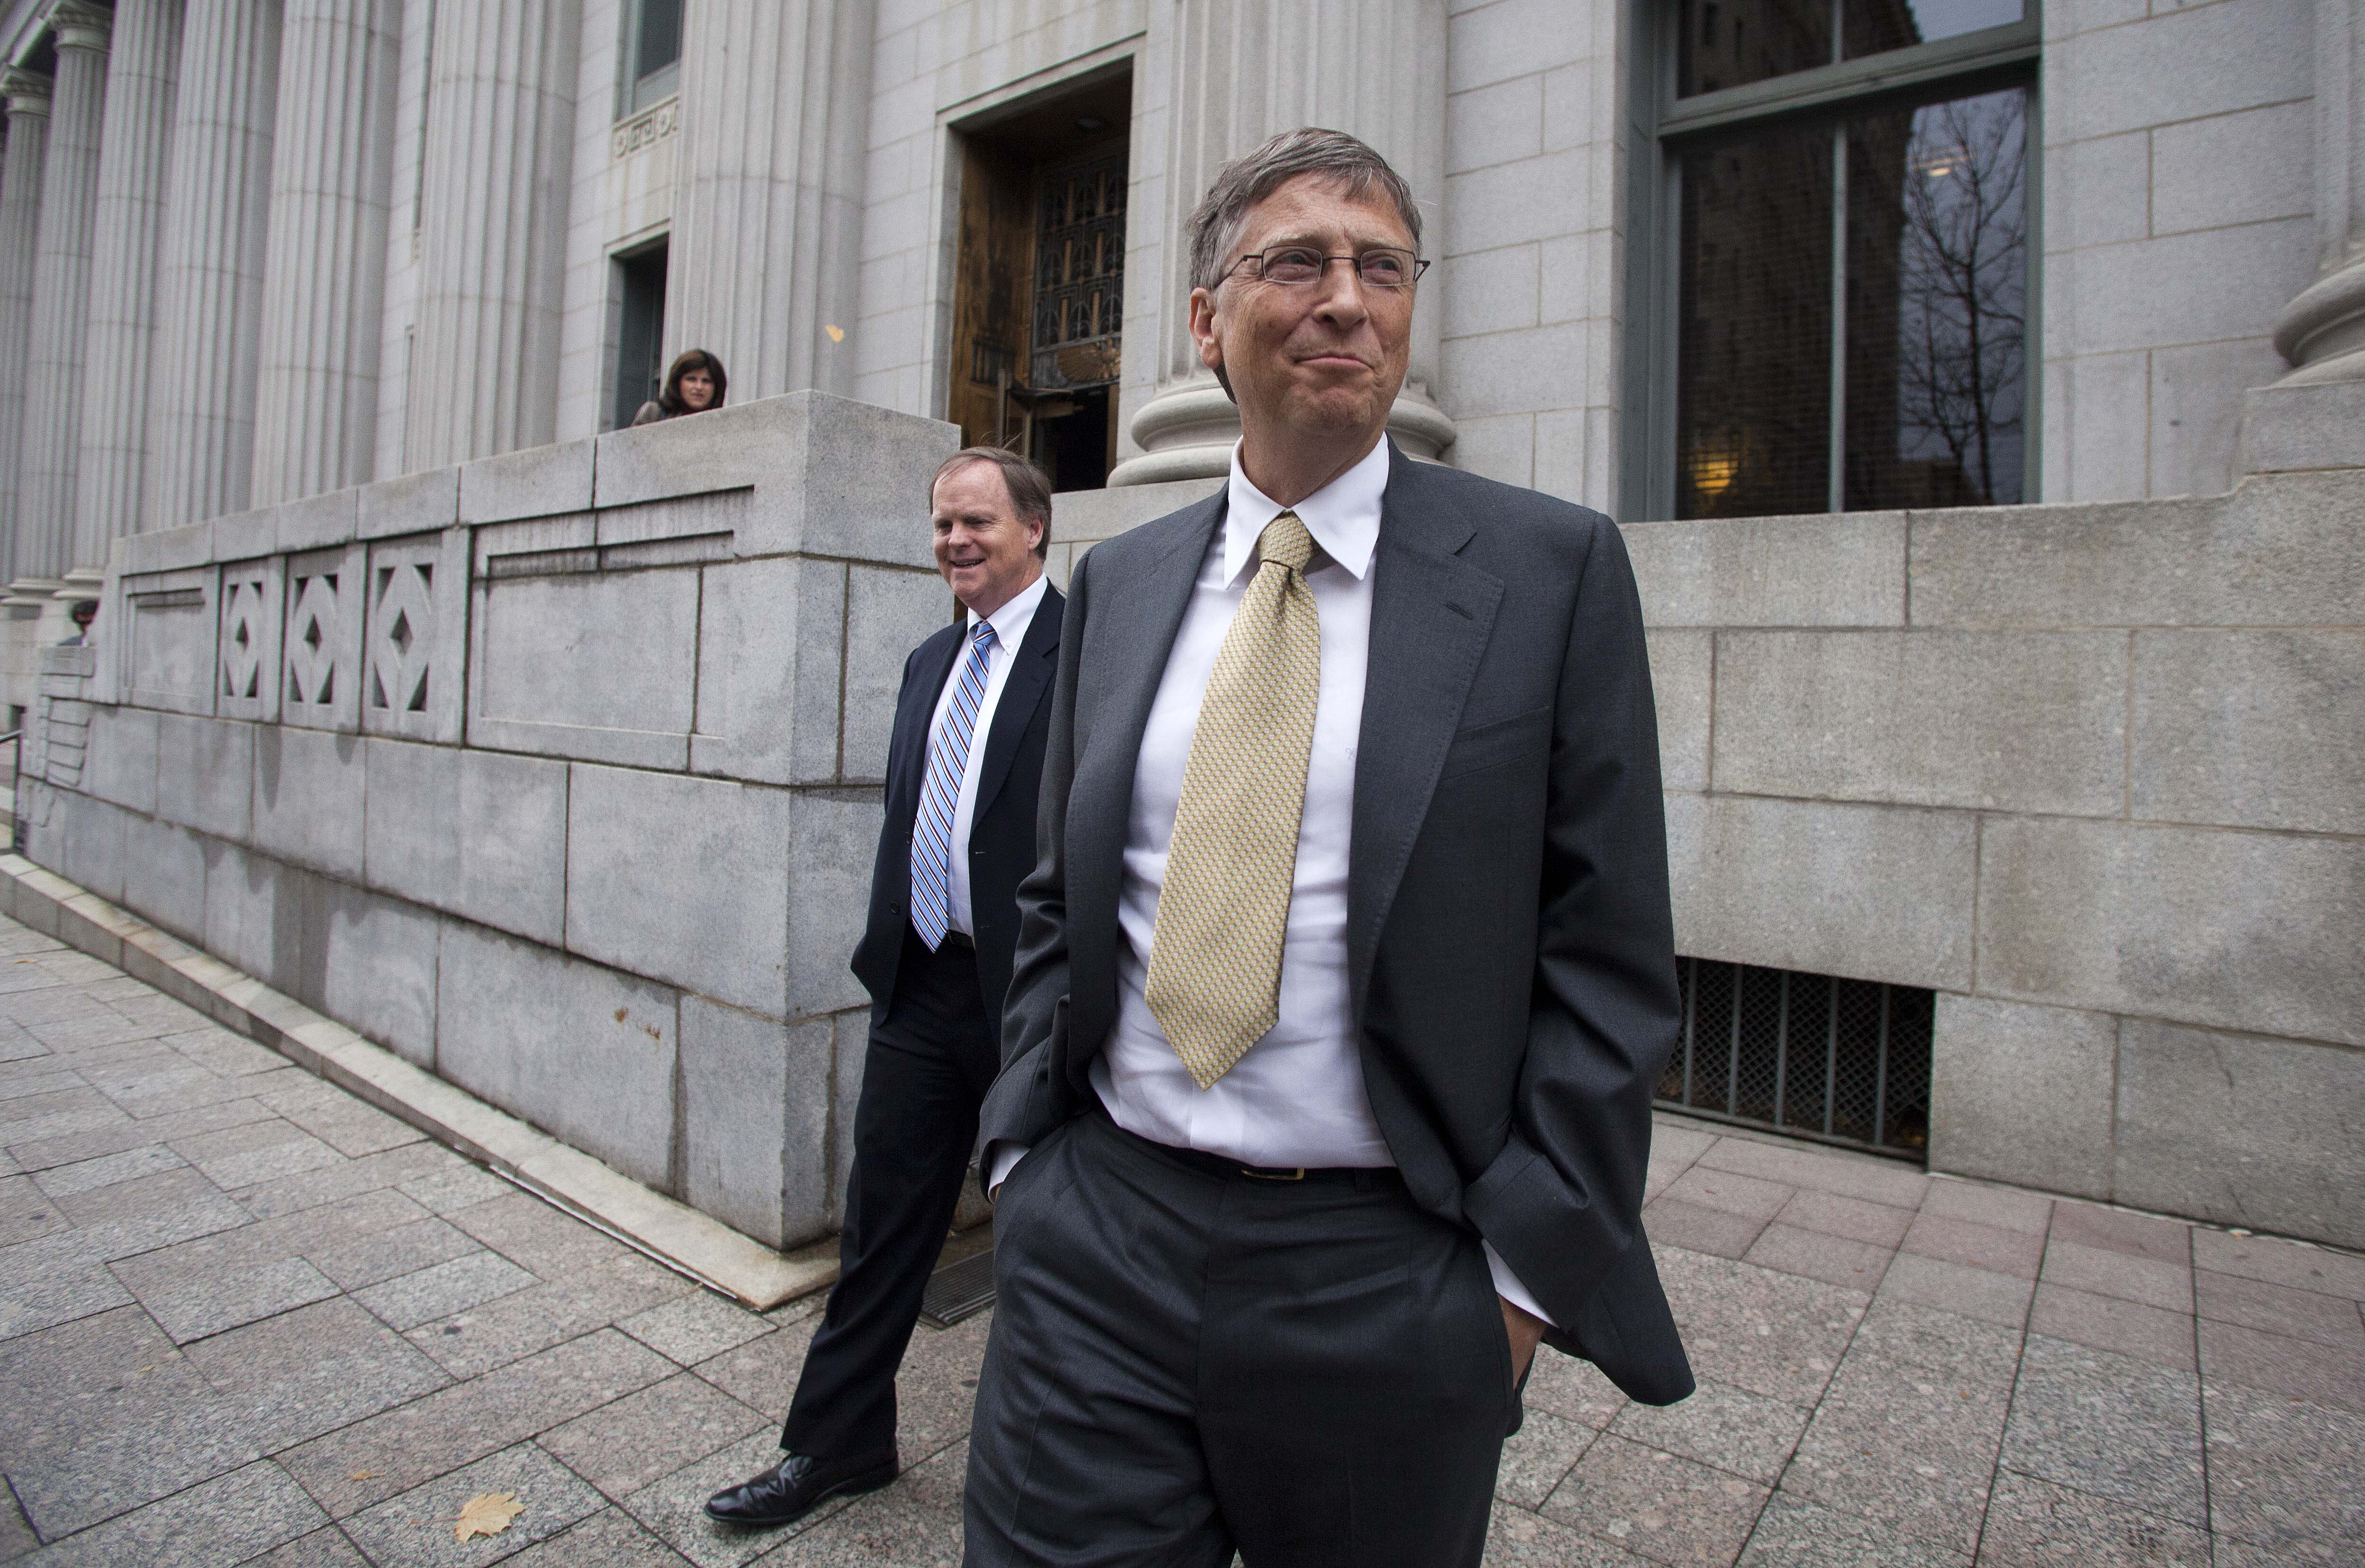 an analysis of the anti trust lawsuit against bill gates and microsoft